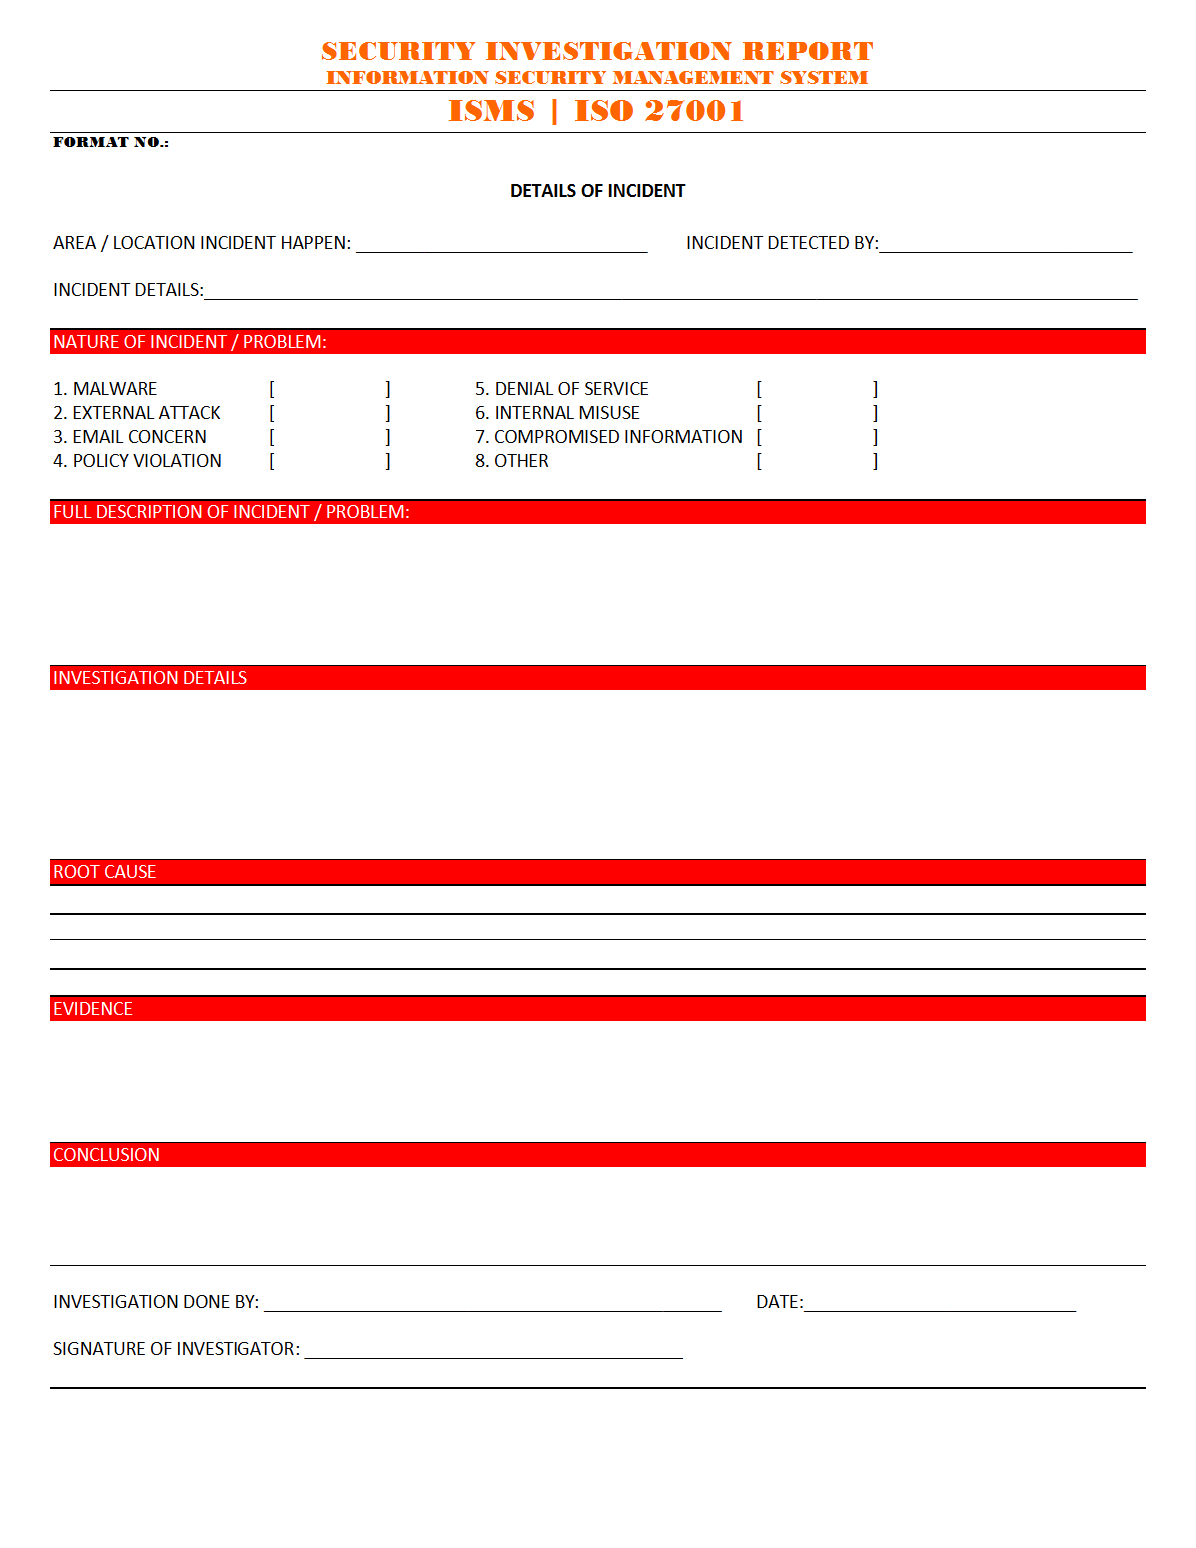 Security Investigation Report - Regarding Physical Security Report Template